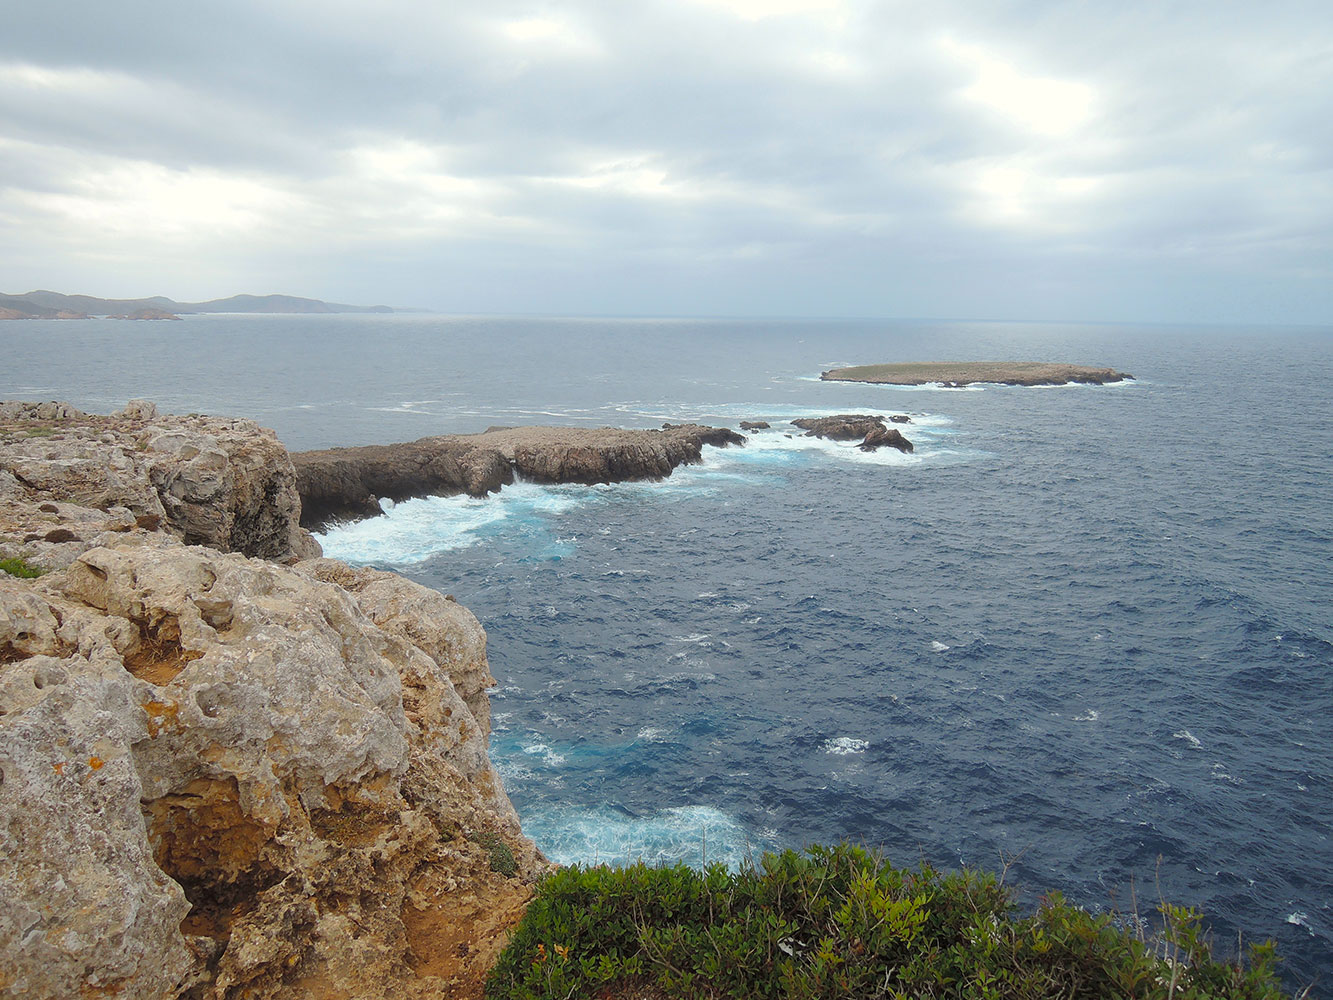 cap-de-cavalleria-menorca-looking-west